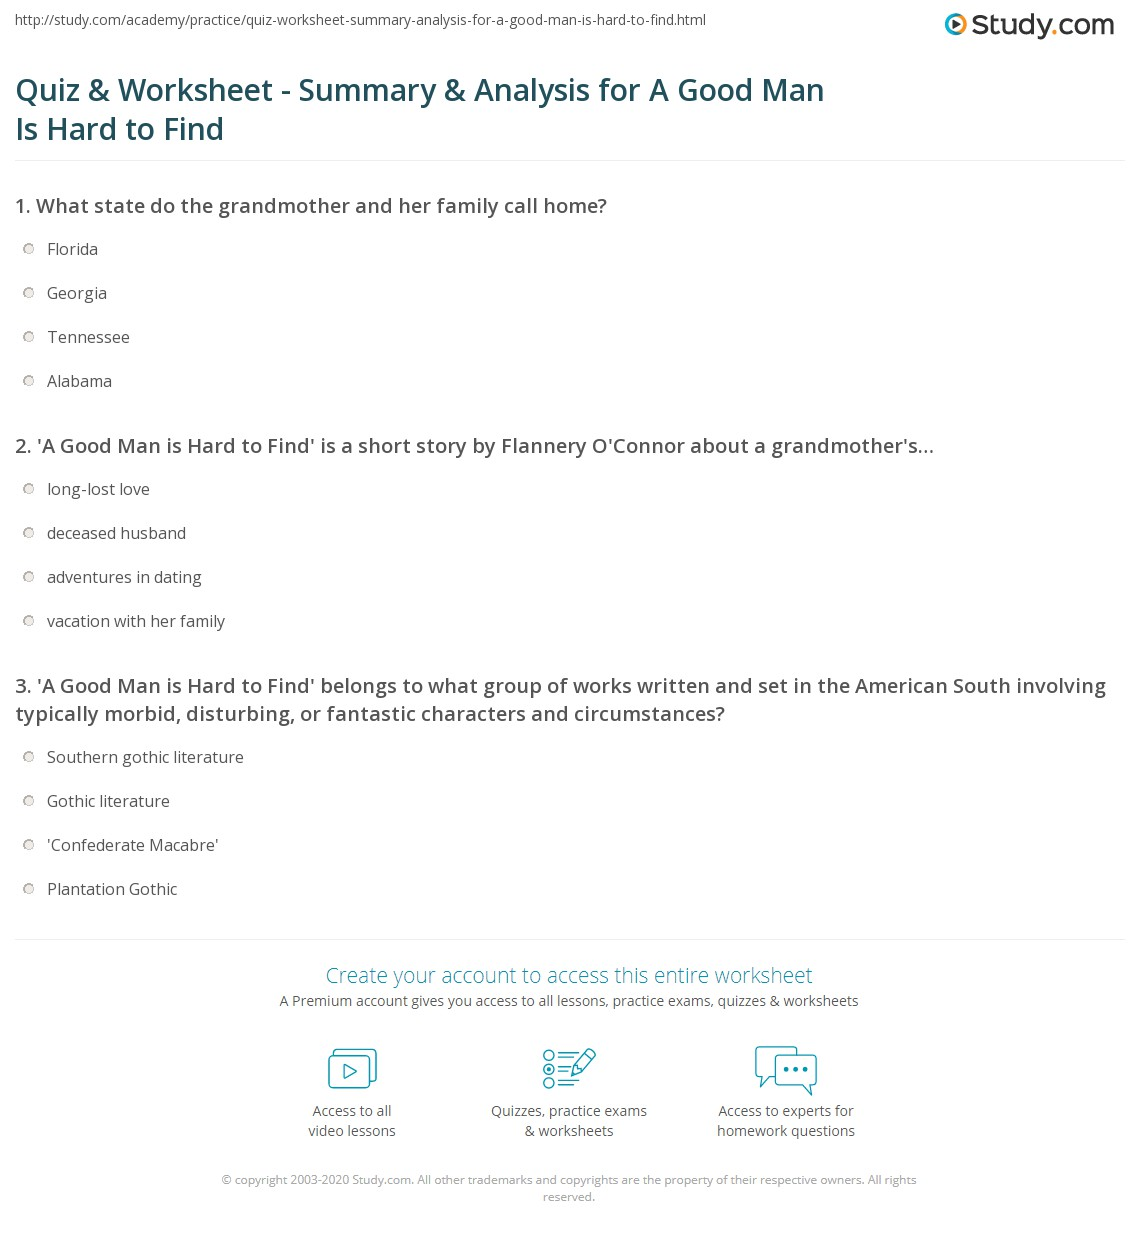 quiz worksheet summary analysis for a good man is hard to print a good man is hard to by flannery o connor summary analysis worksheet